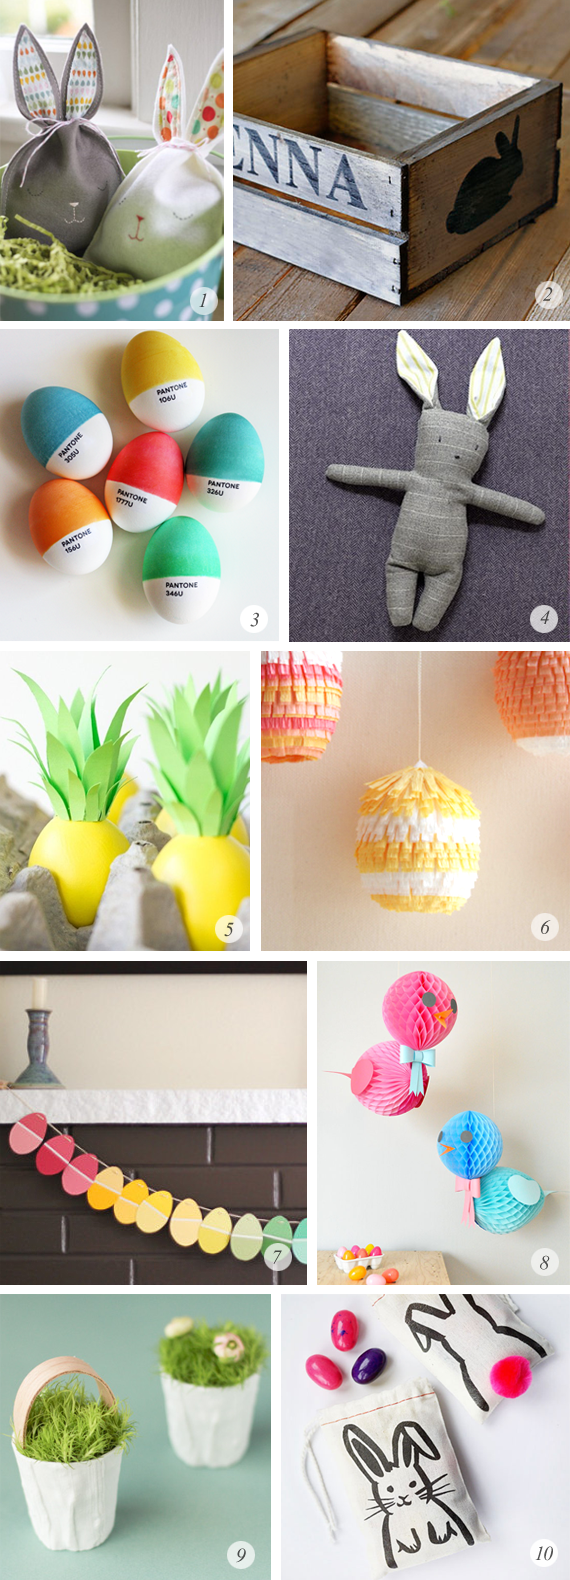 10 Great Easter DIY Projects